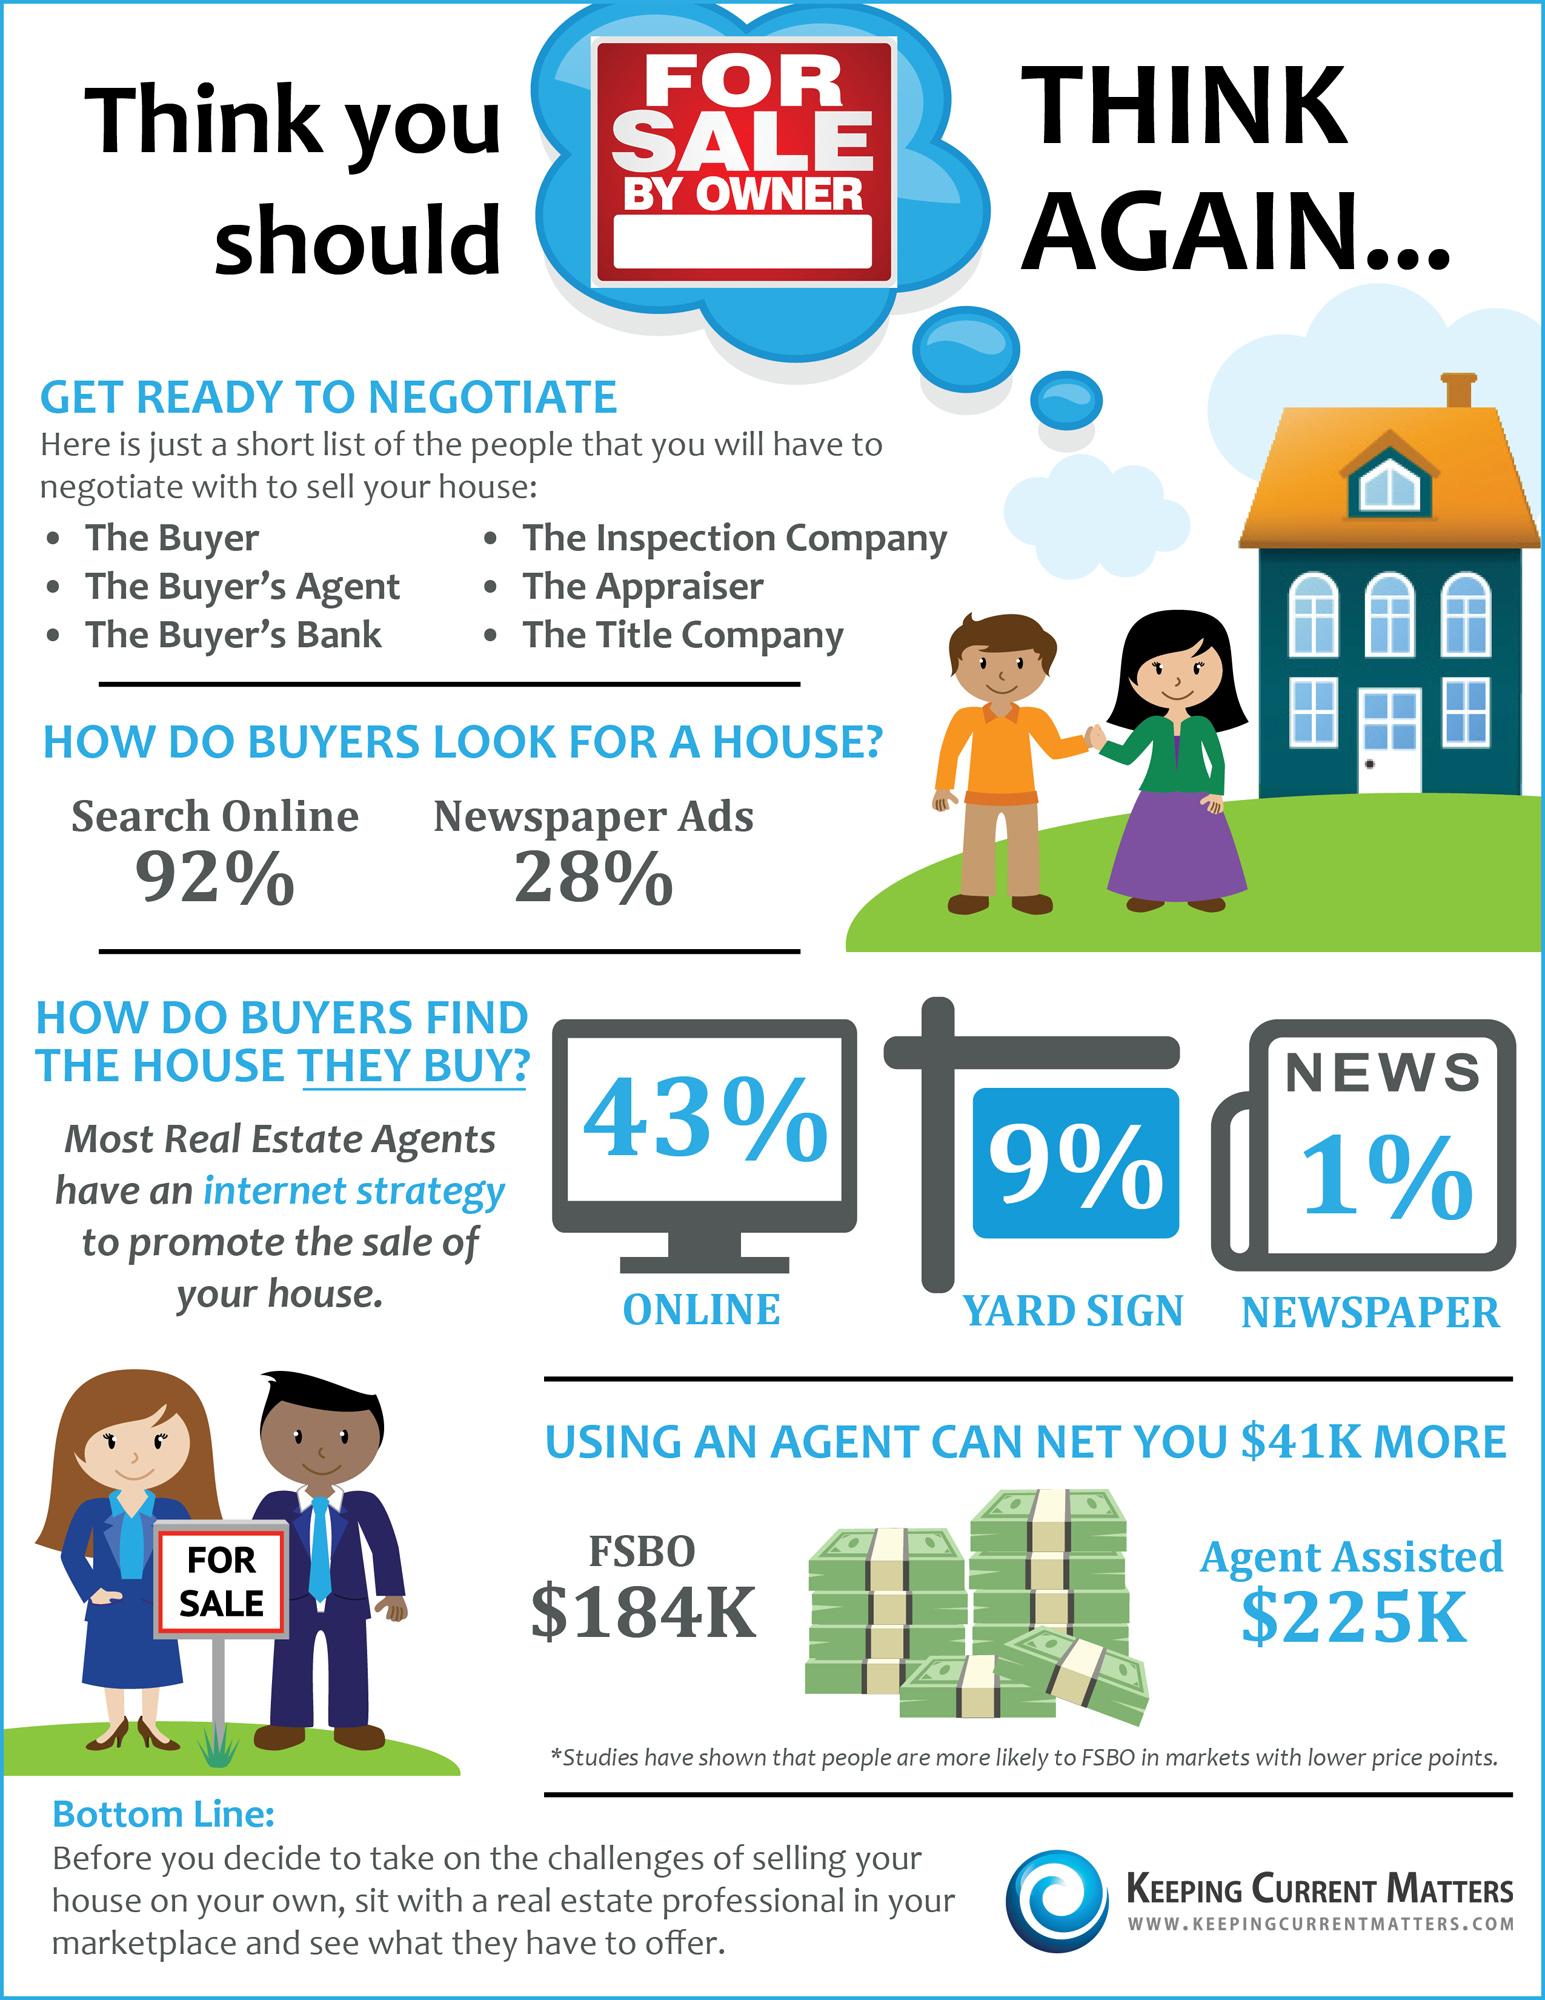 Think You Should FSBO? Think Again | Keeping Current Matters